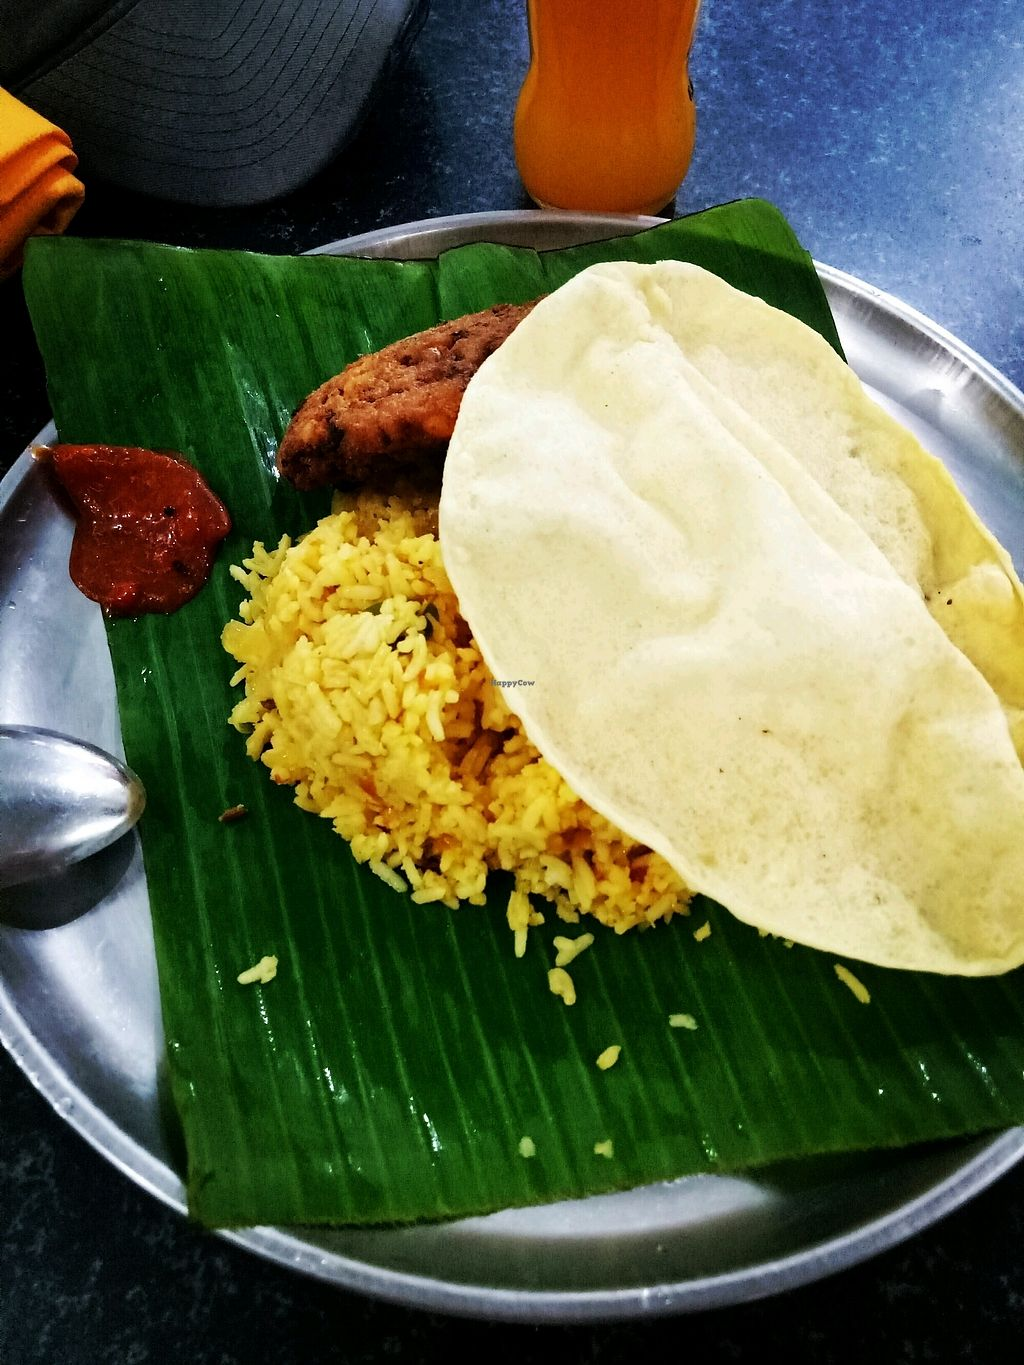 """Photo of Indian Delights  by <a href=""""/members/profile/Pazzodaprile"""">Pazzodaprile</a> <br/>tomato rice  <br/> December 5, 2017  - <a href='/contact/abuse/image/106559/332362'>Report</a>"""